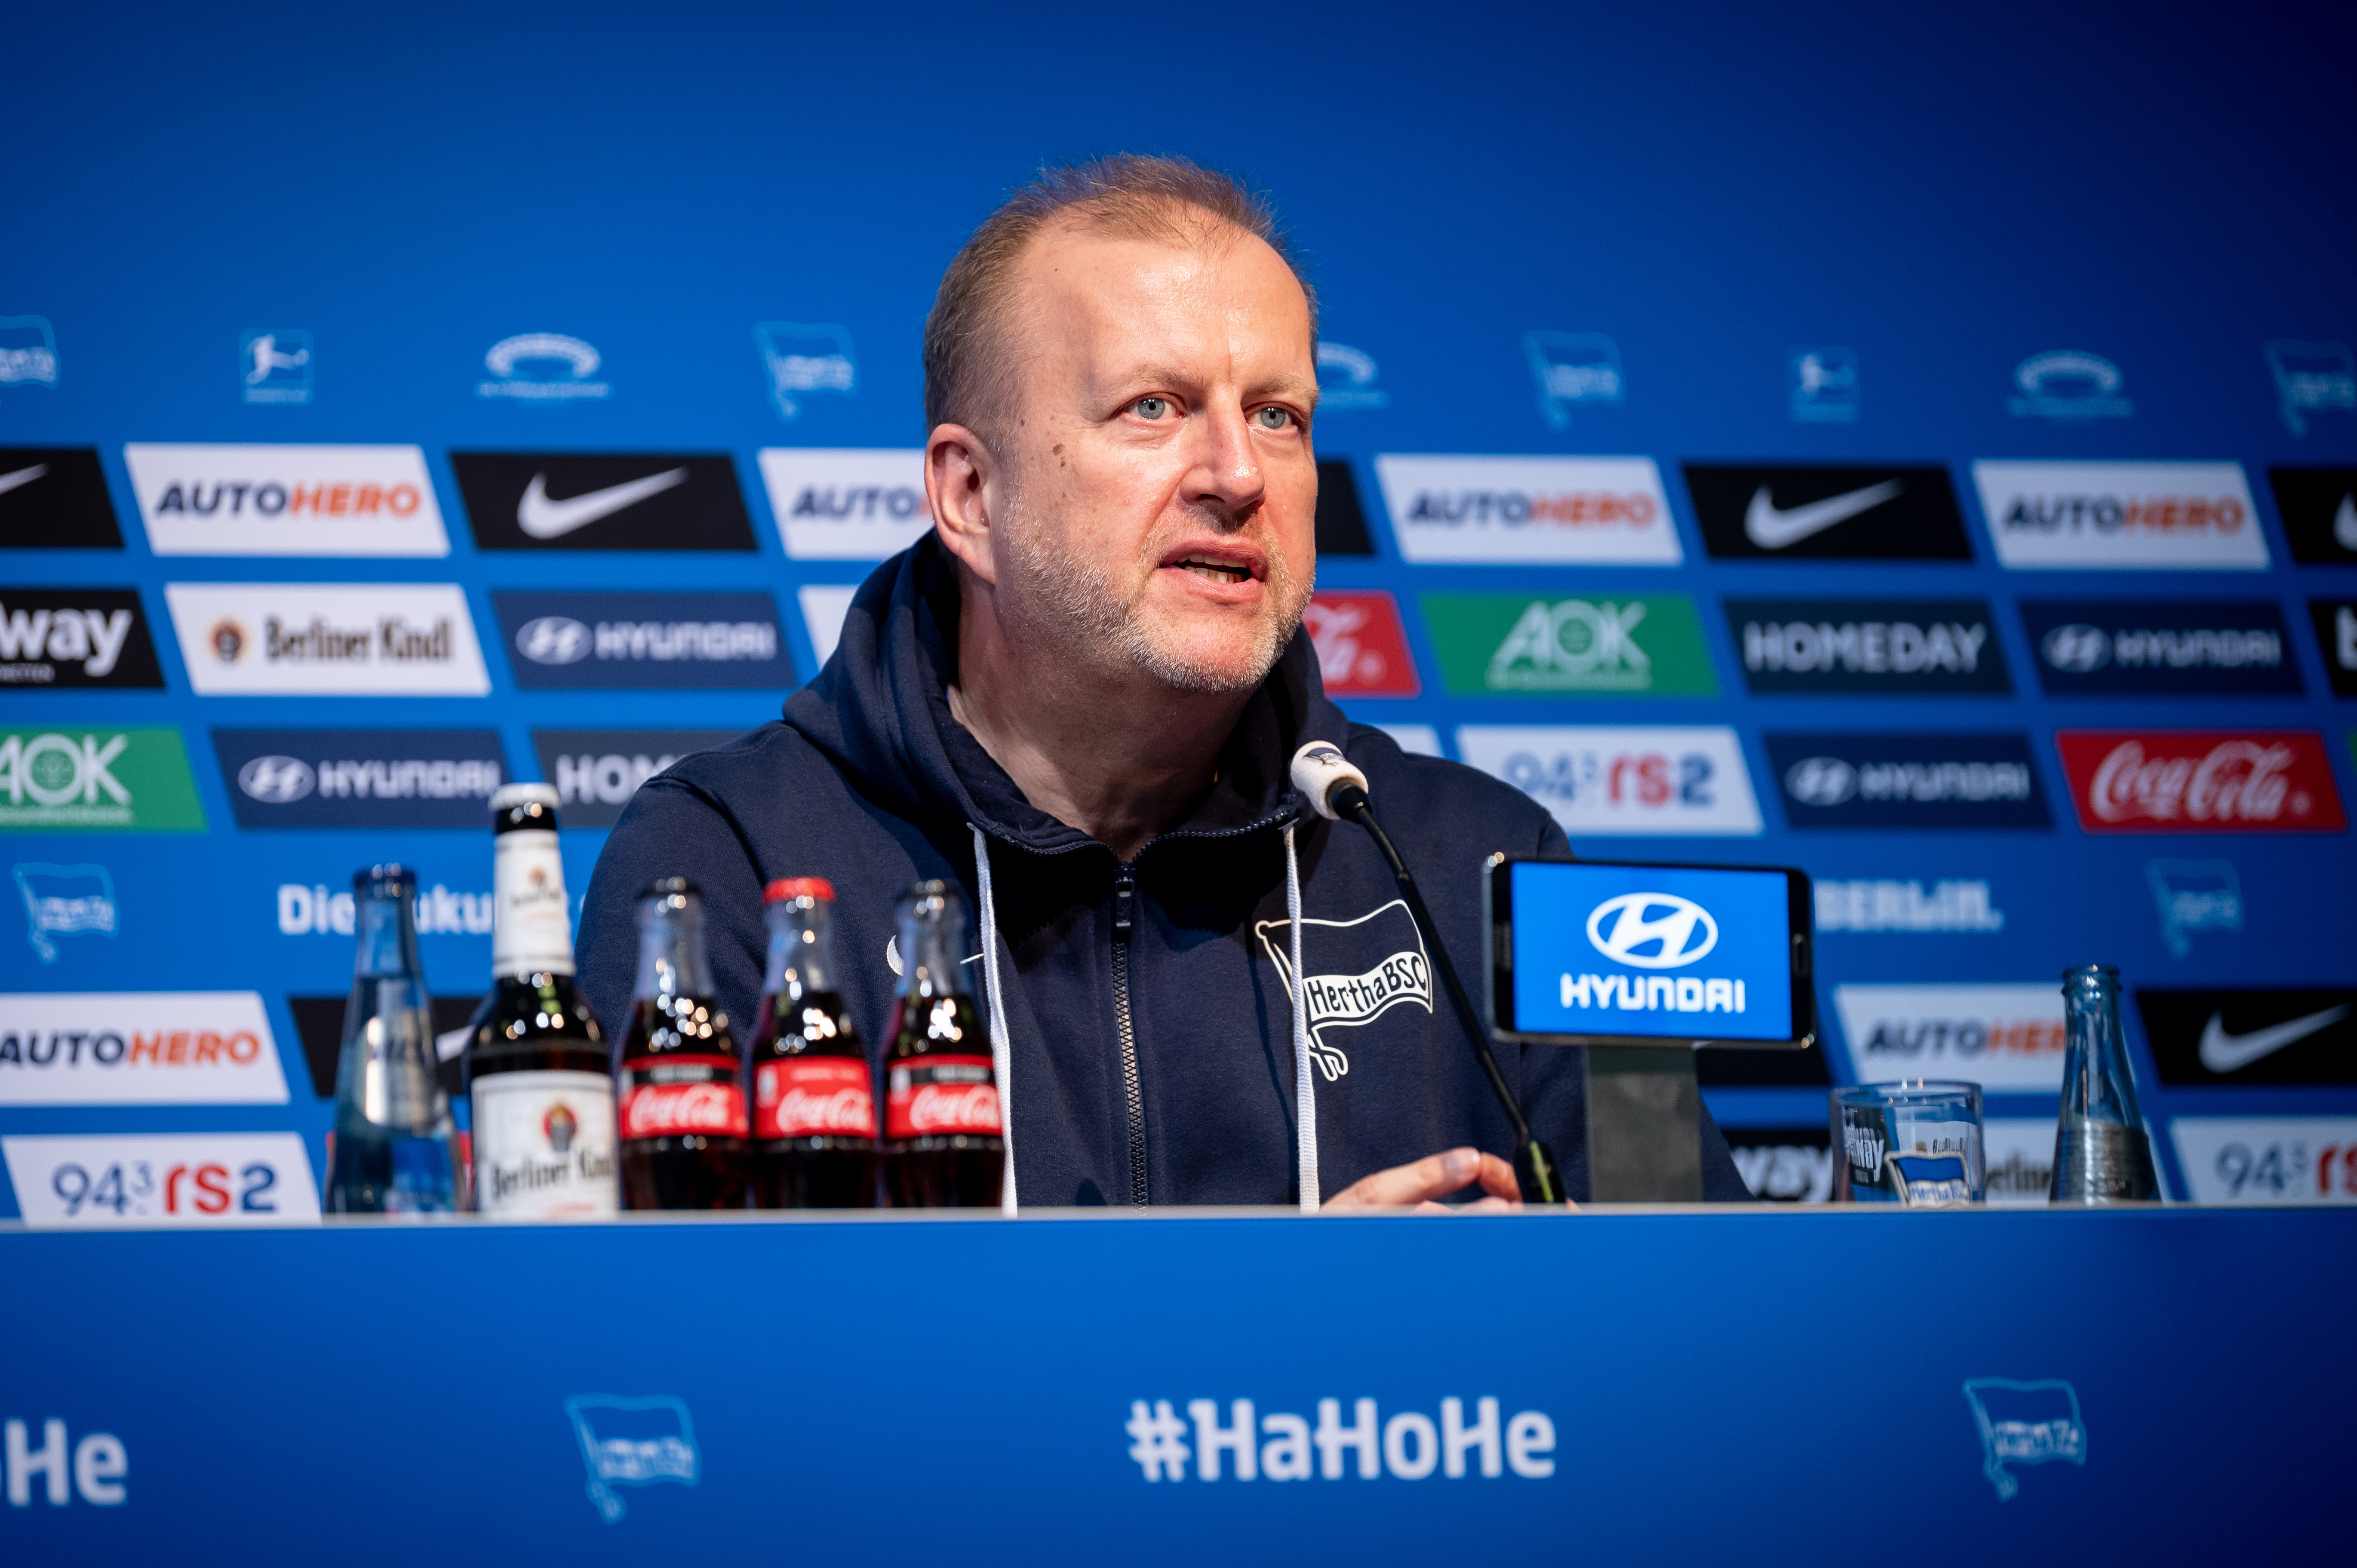 Ingo Schiller at the press conference.